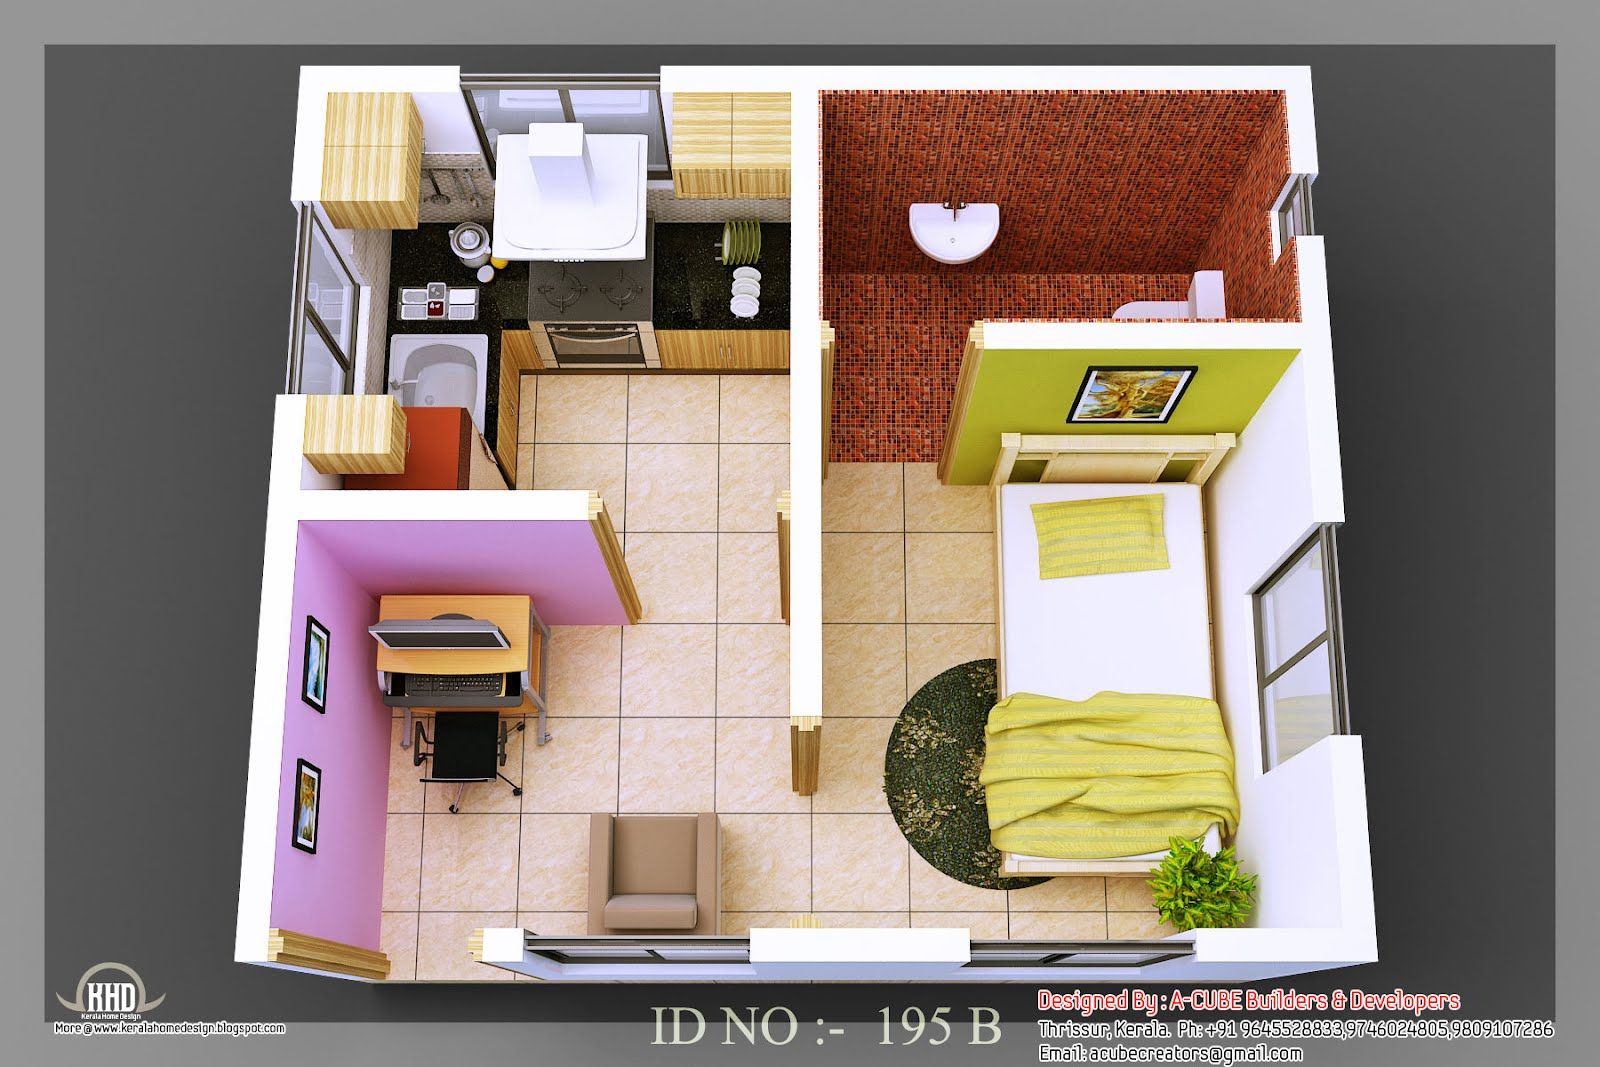 Isometric Views Small House Plans Kerala Home Design Floor Information Isometric Small House Plans